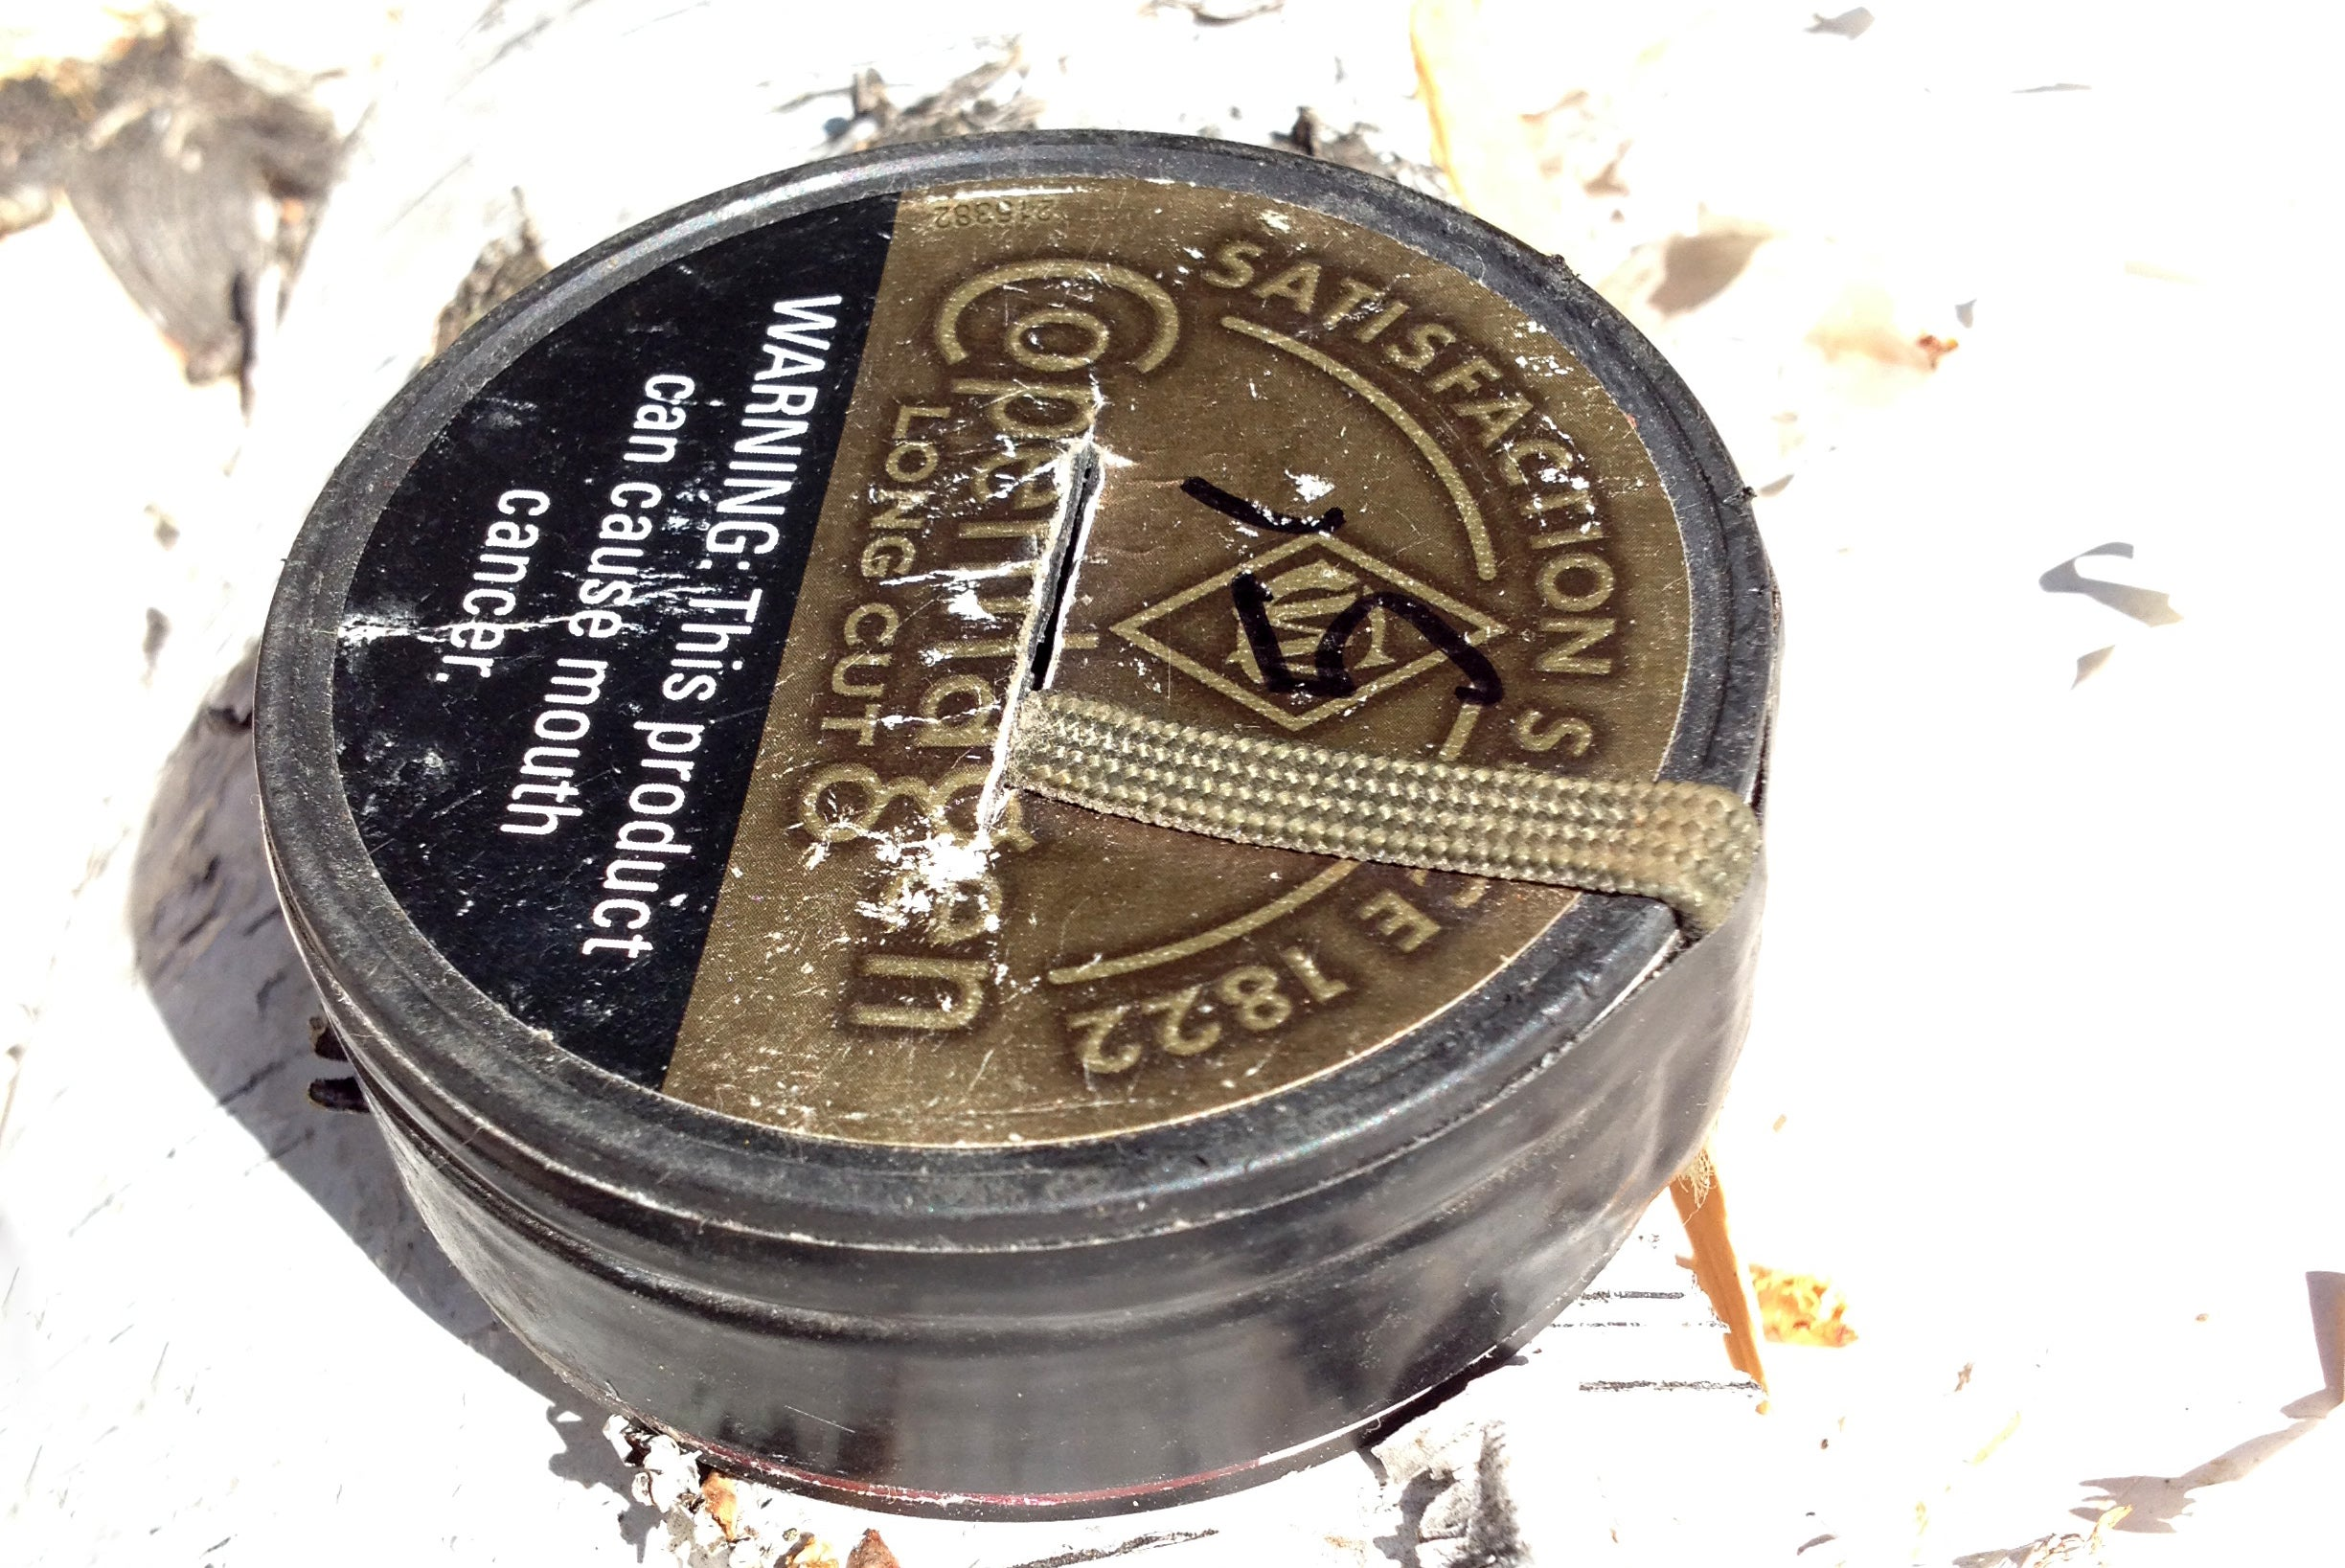 Gear Hacks: 5 Useful Ways to Reuse Empty Chewing Tobacco Cans